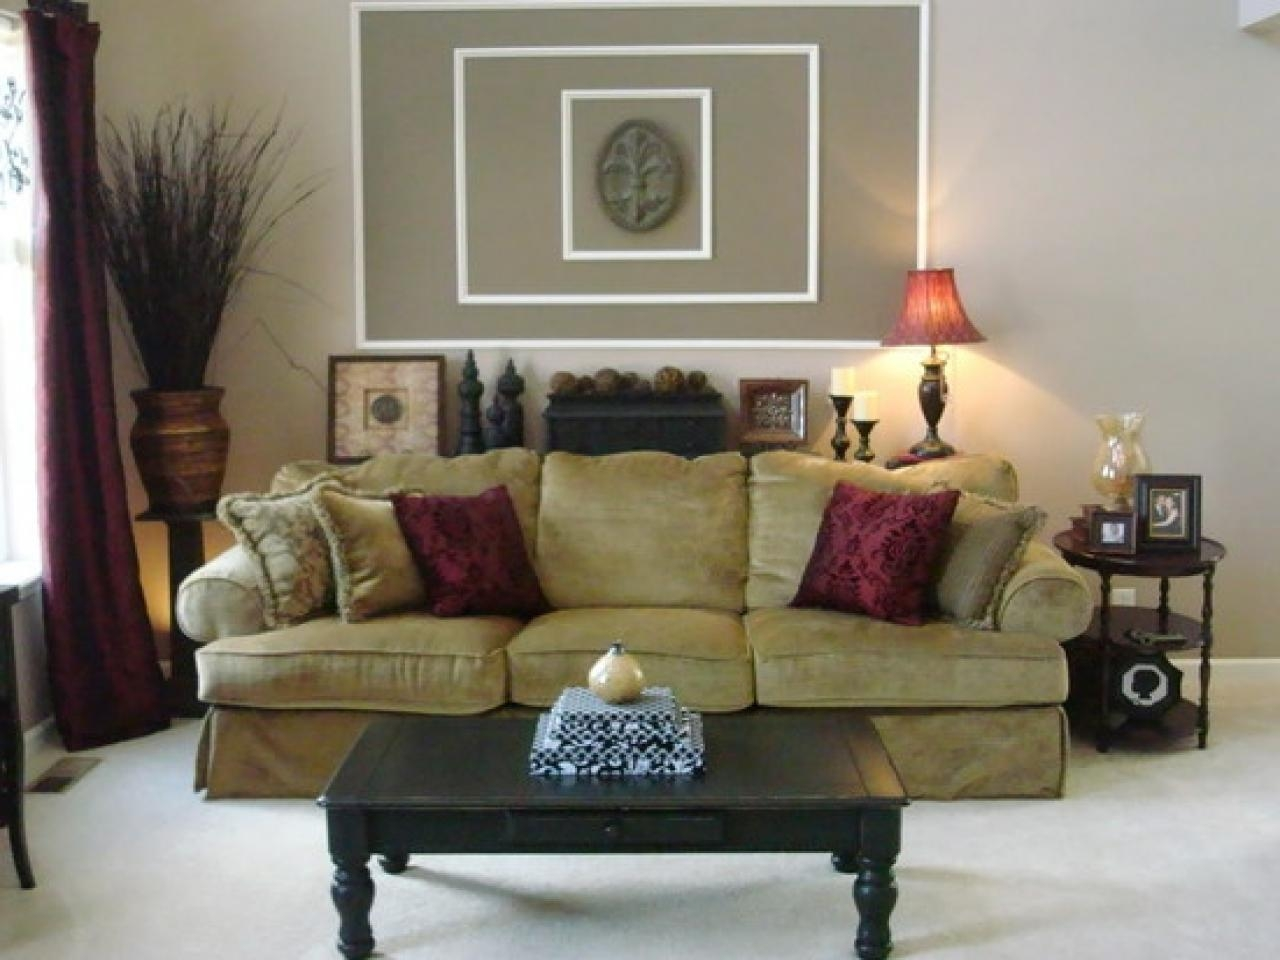 Home Design : Decorating Ideas For Large Walls In Living Room Wall With Regard To Wall Art For Large Walls (Image 14 of 20)